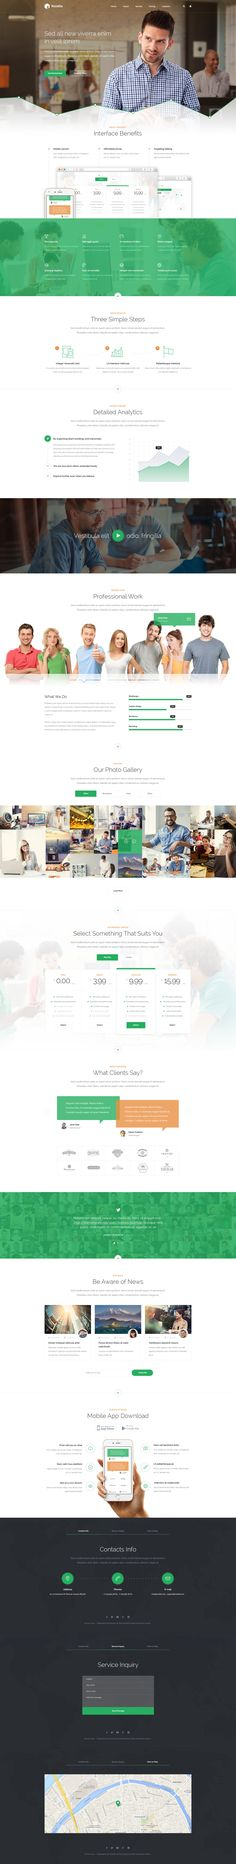 Rosetta a multipurpose Wordpress template. You can use it for promotion agencies, analysts, marketing, portfolio, and much more. The template is based on Bootstrap framework with the use of modern technology.